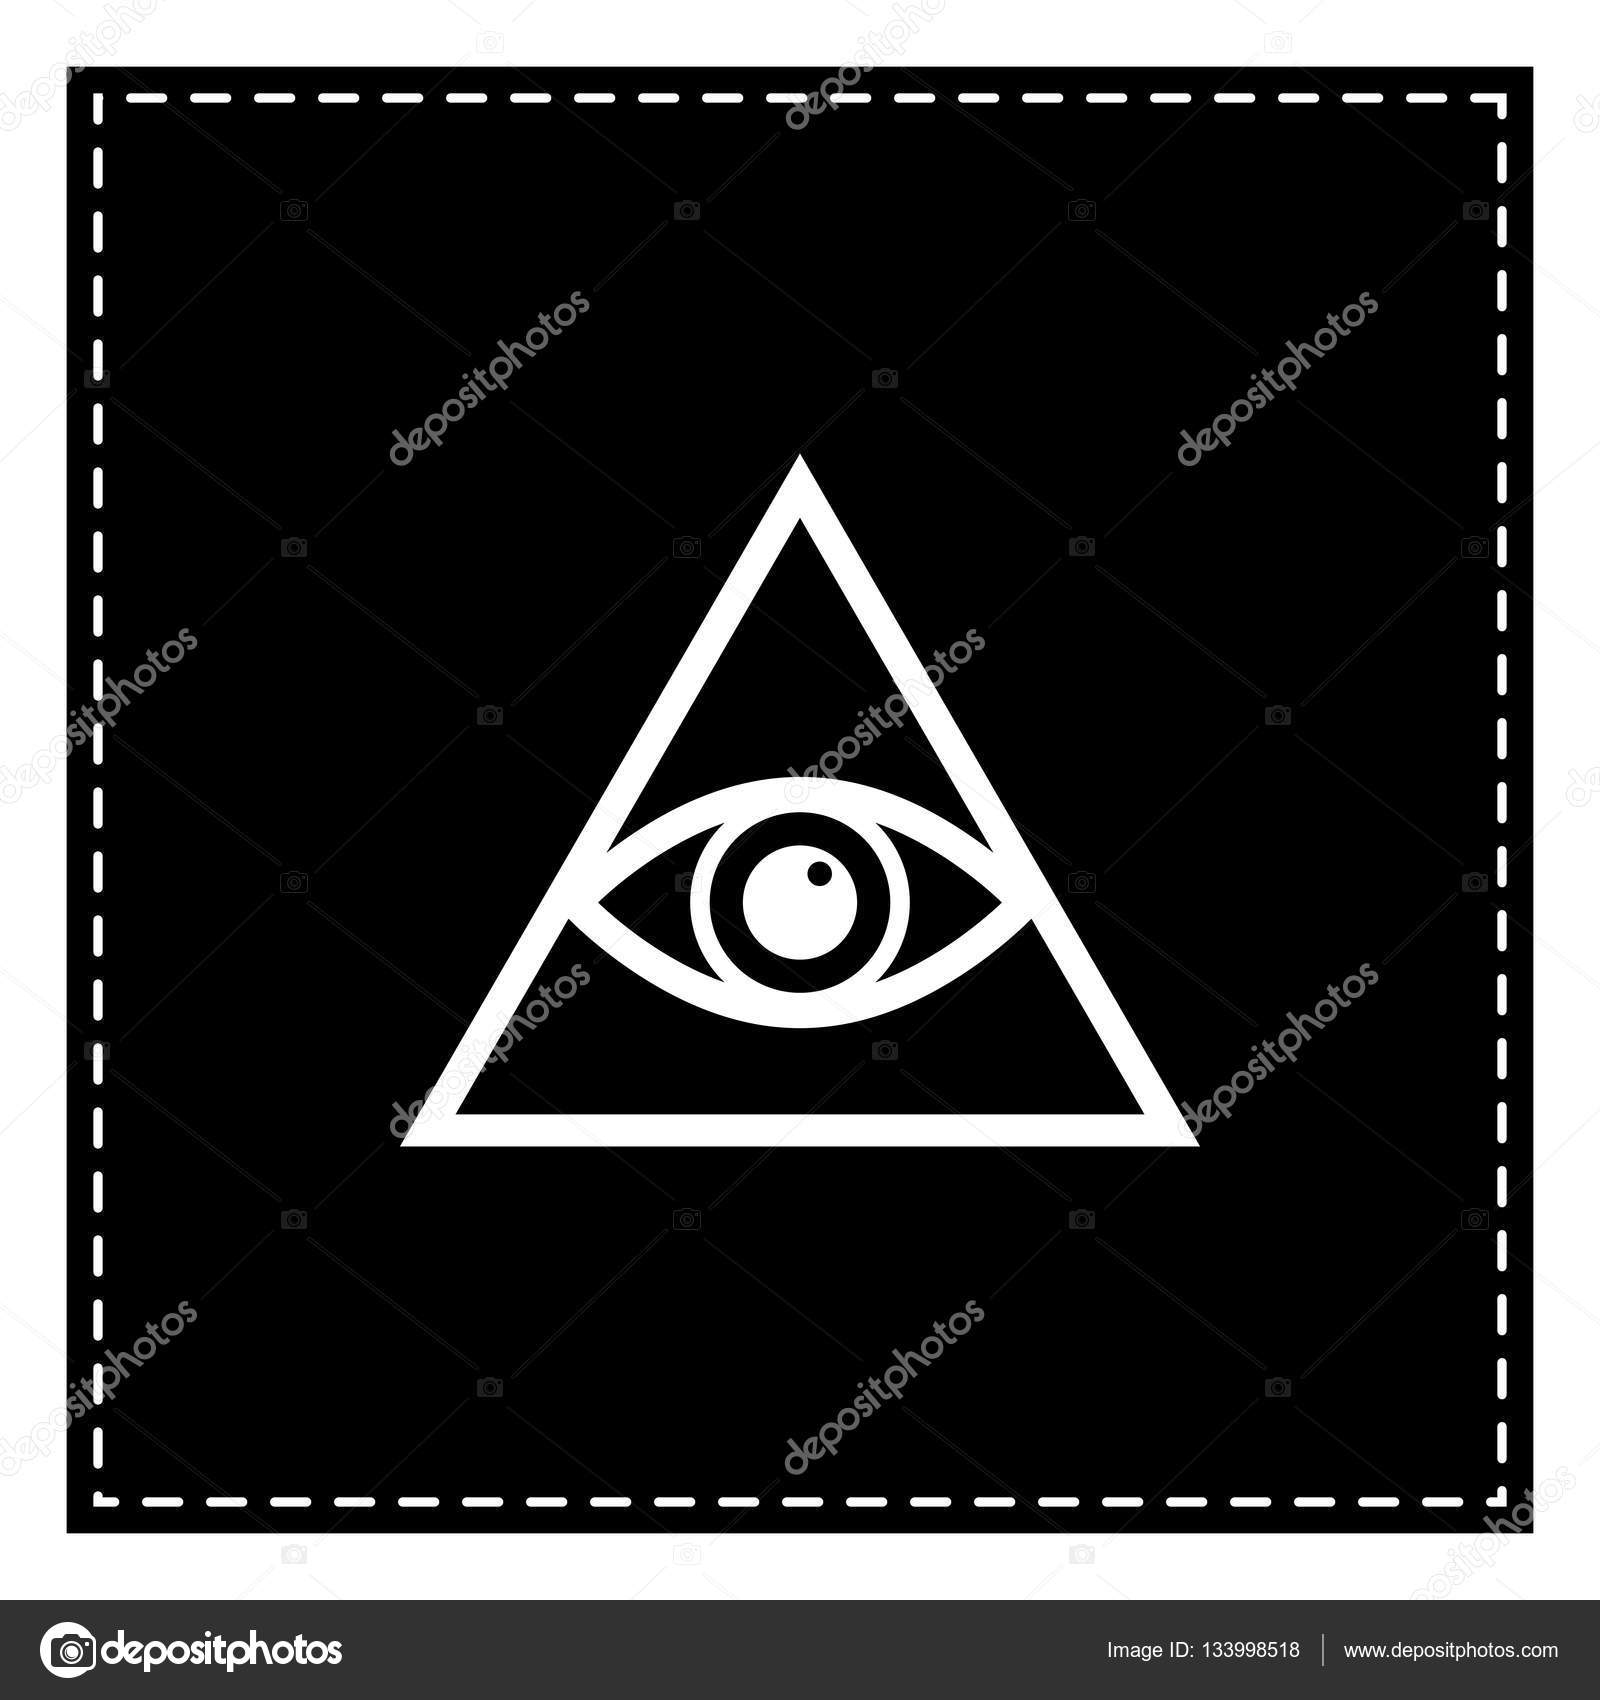 All Seeing Eye Pyramid Symbol Freemason And Spiritual Black Patch On White Background Isolated Vector By Asmati1702gmail